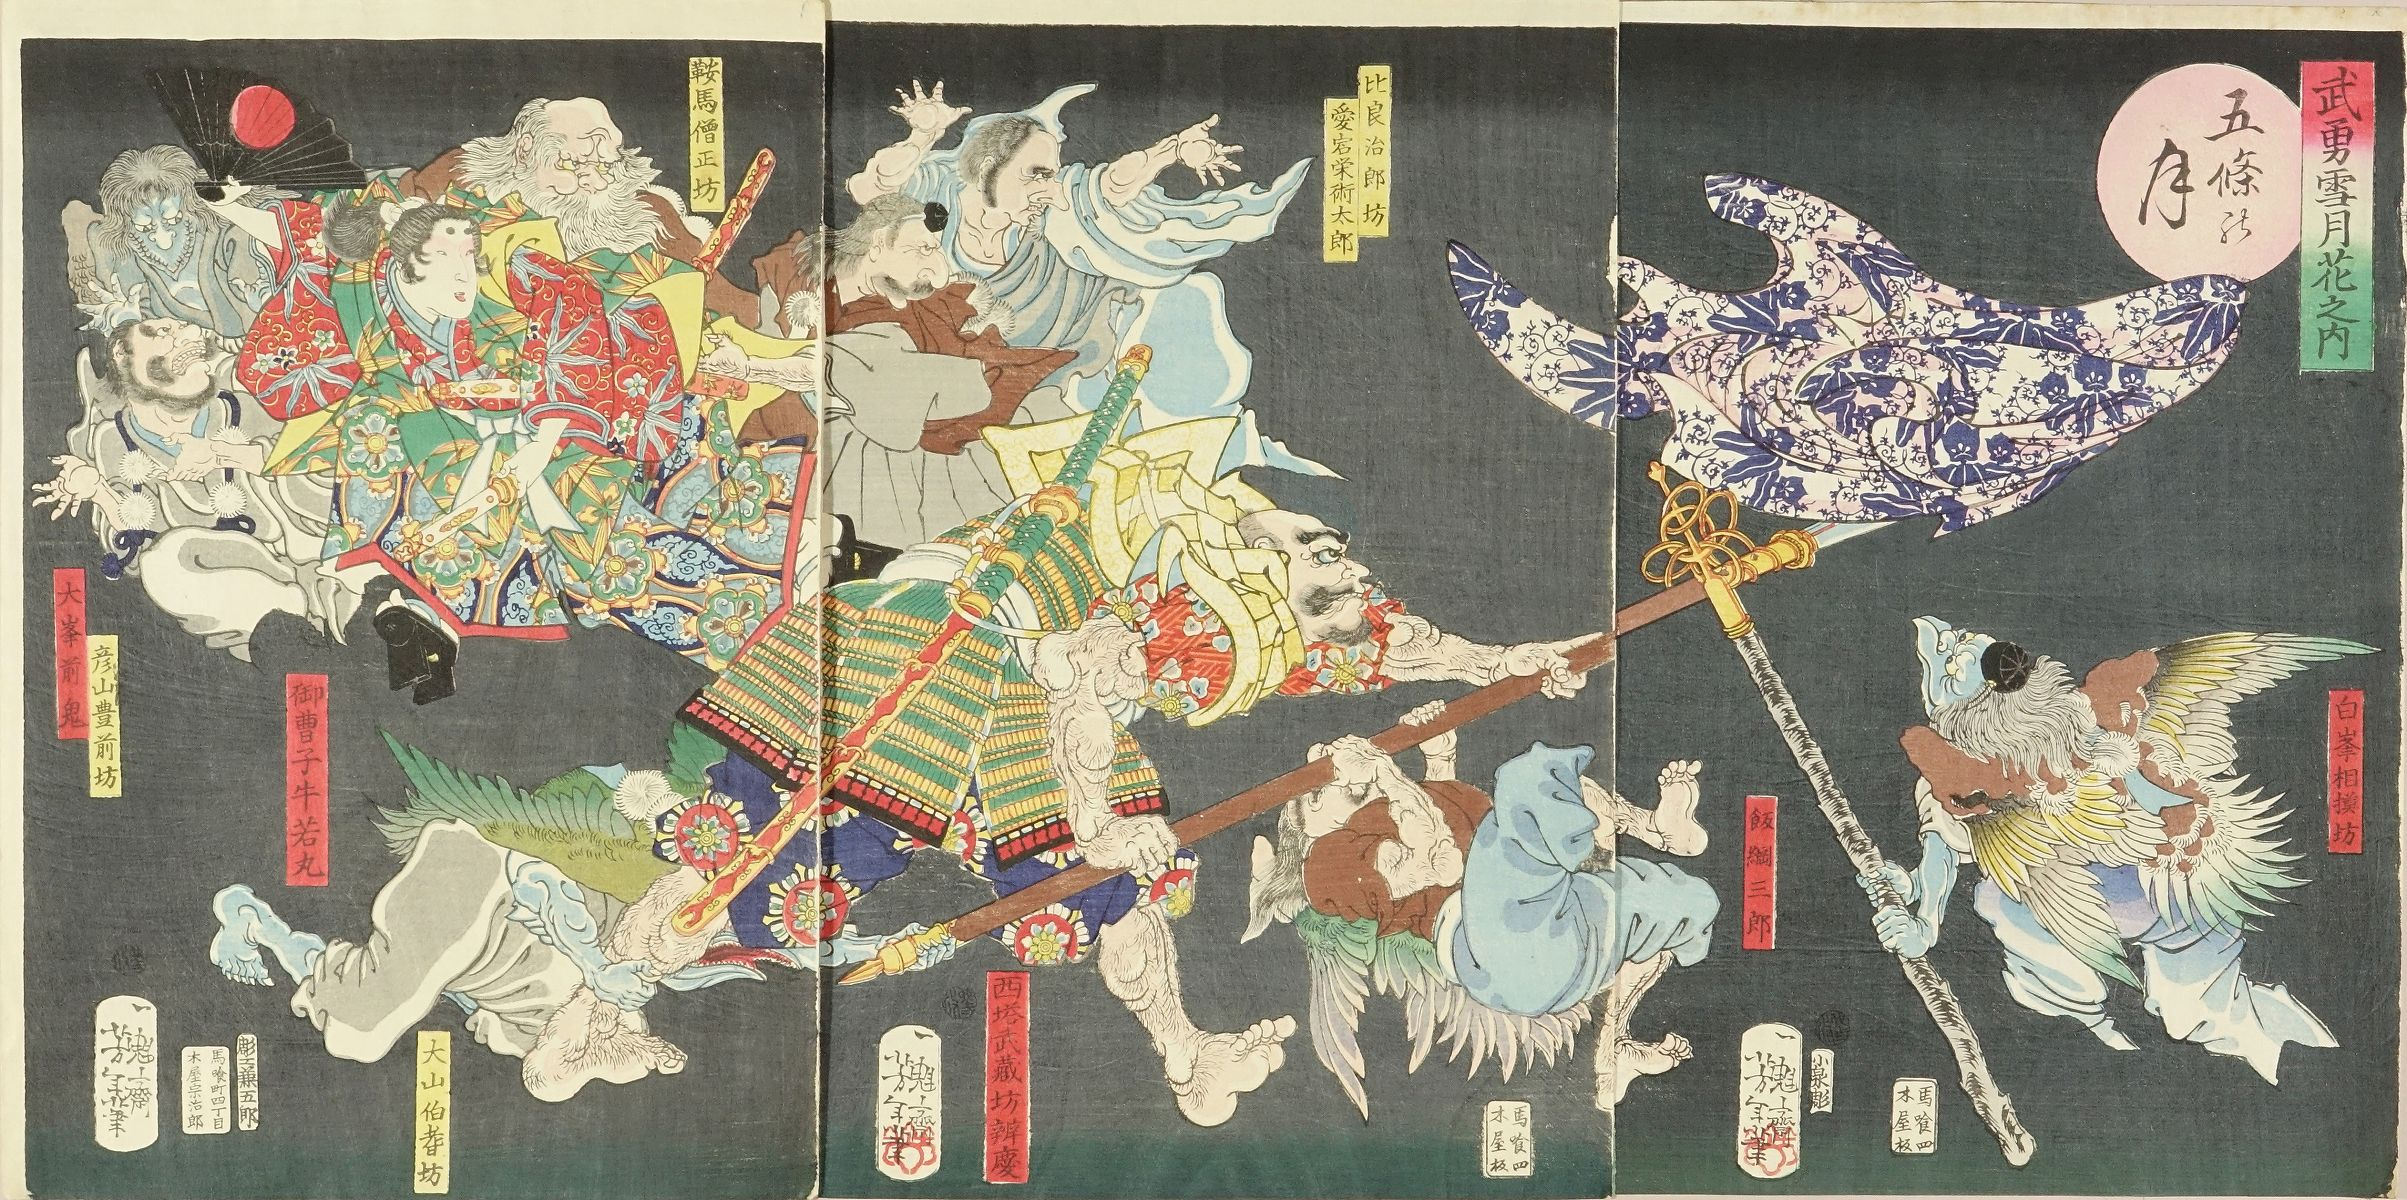 YOSHITOSHI Priest Benkei and Ushiwakamaru, titled <i>Gojo no tsuki</i> (Moon over Gojo Bridge), from <i>Buyu setsugekka no uchi</i> (Snow, moon and flower with heroes), triptych